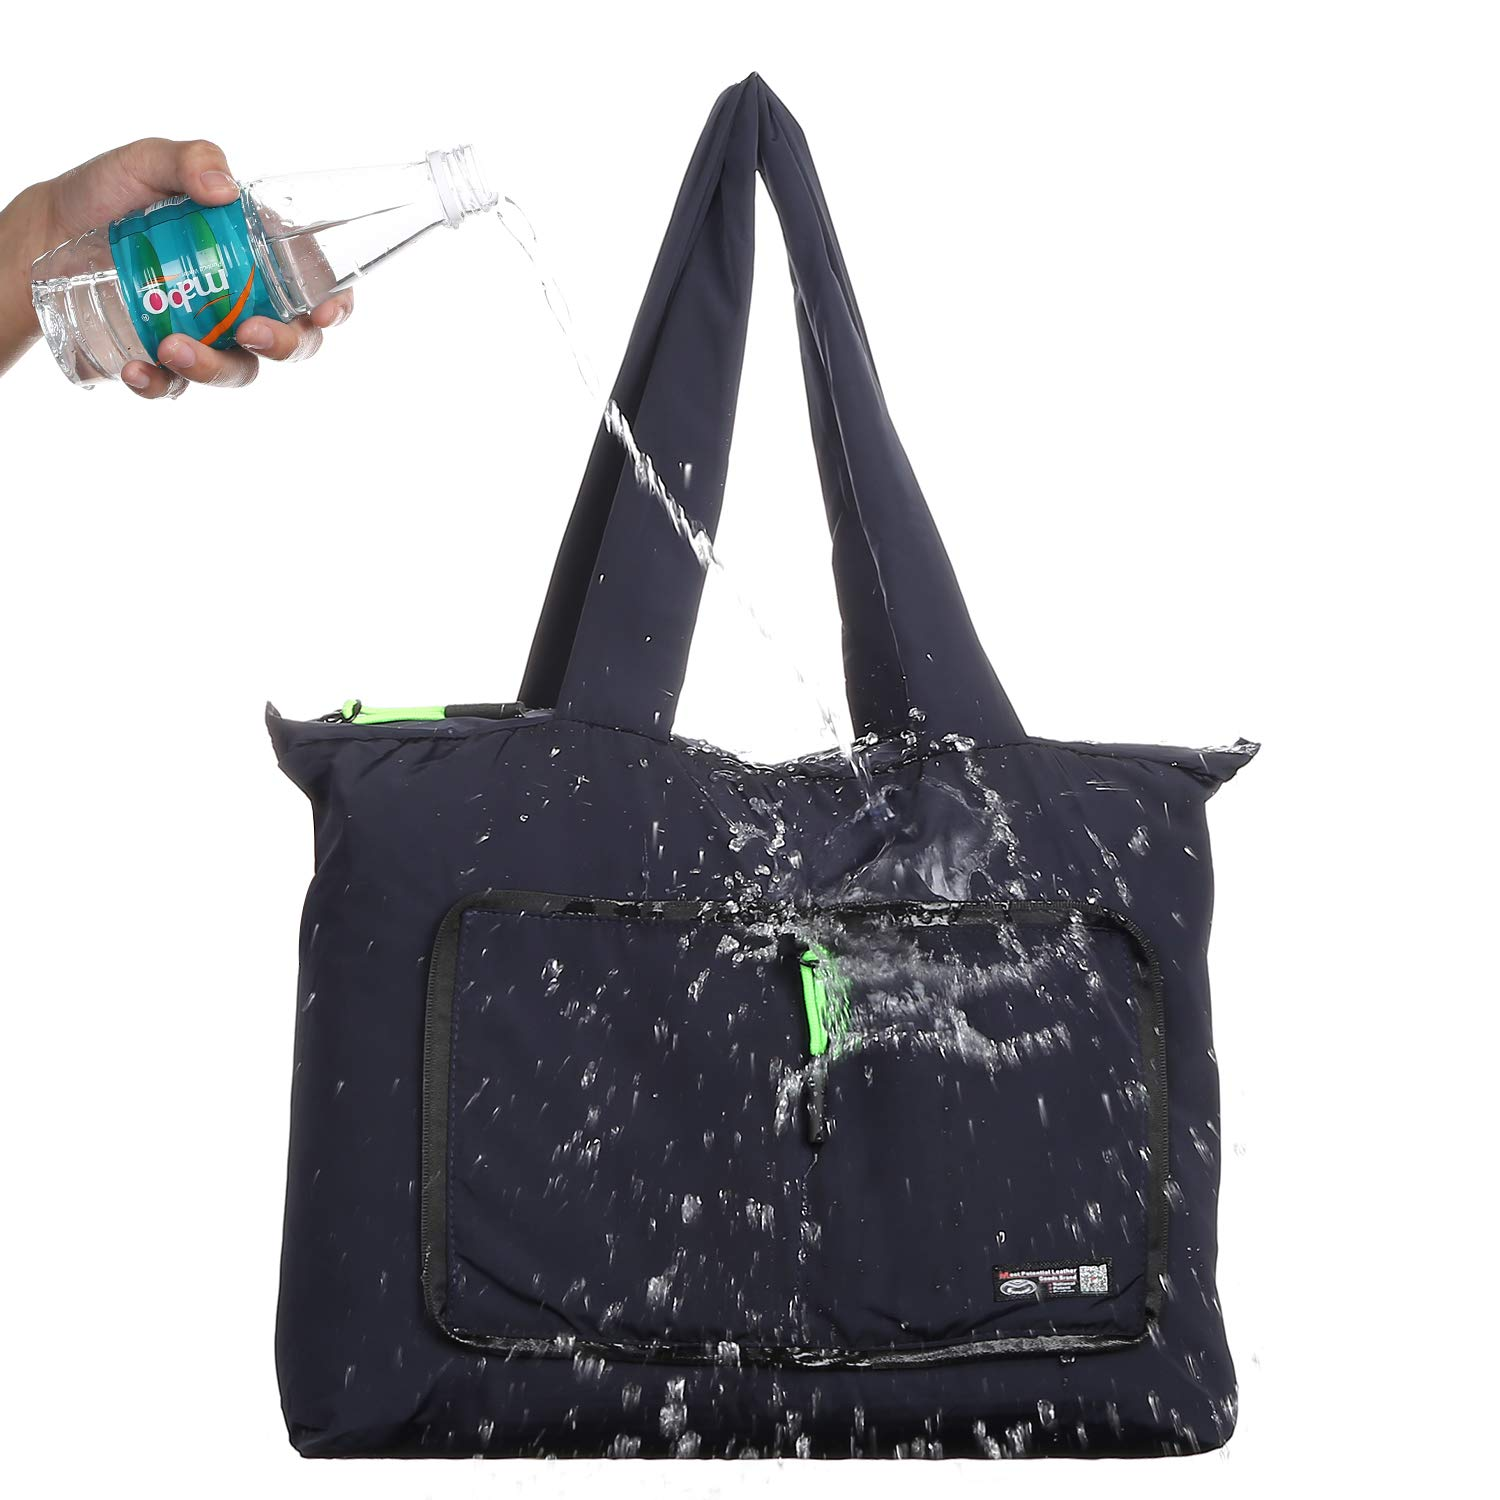 Lightweight Foldable Waterproof Shoulder Tote Bag for Shopping Sports Gym Travel